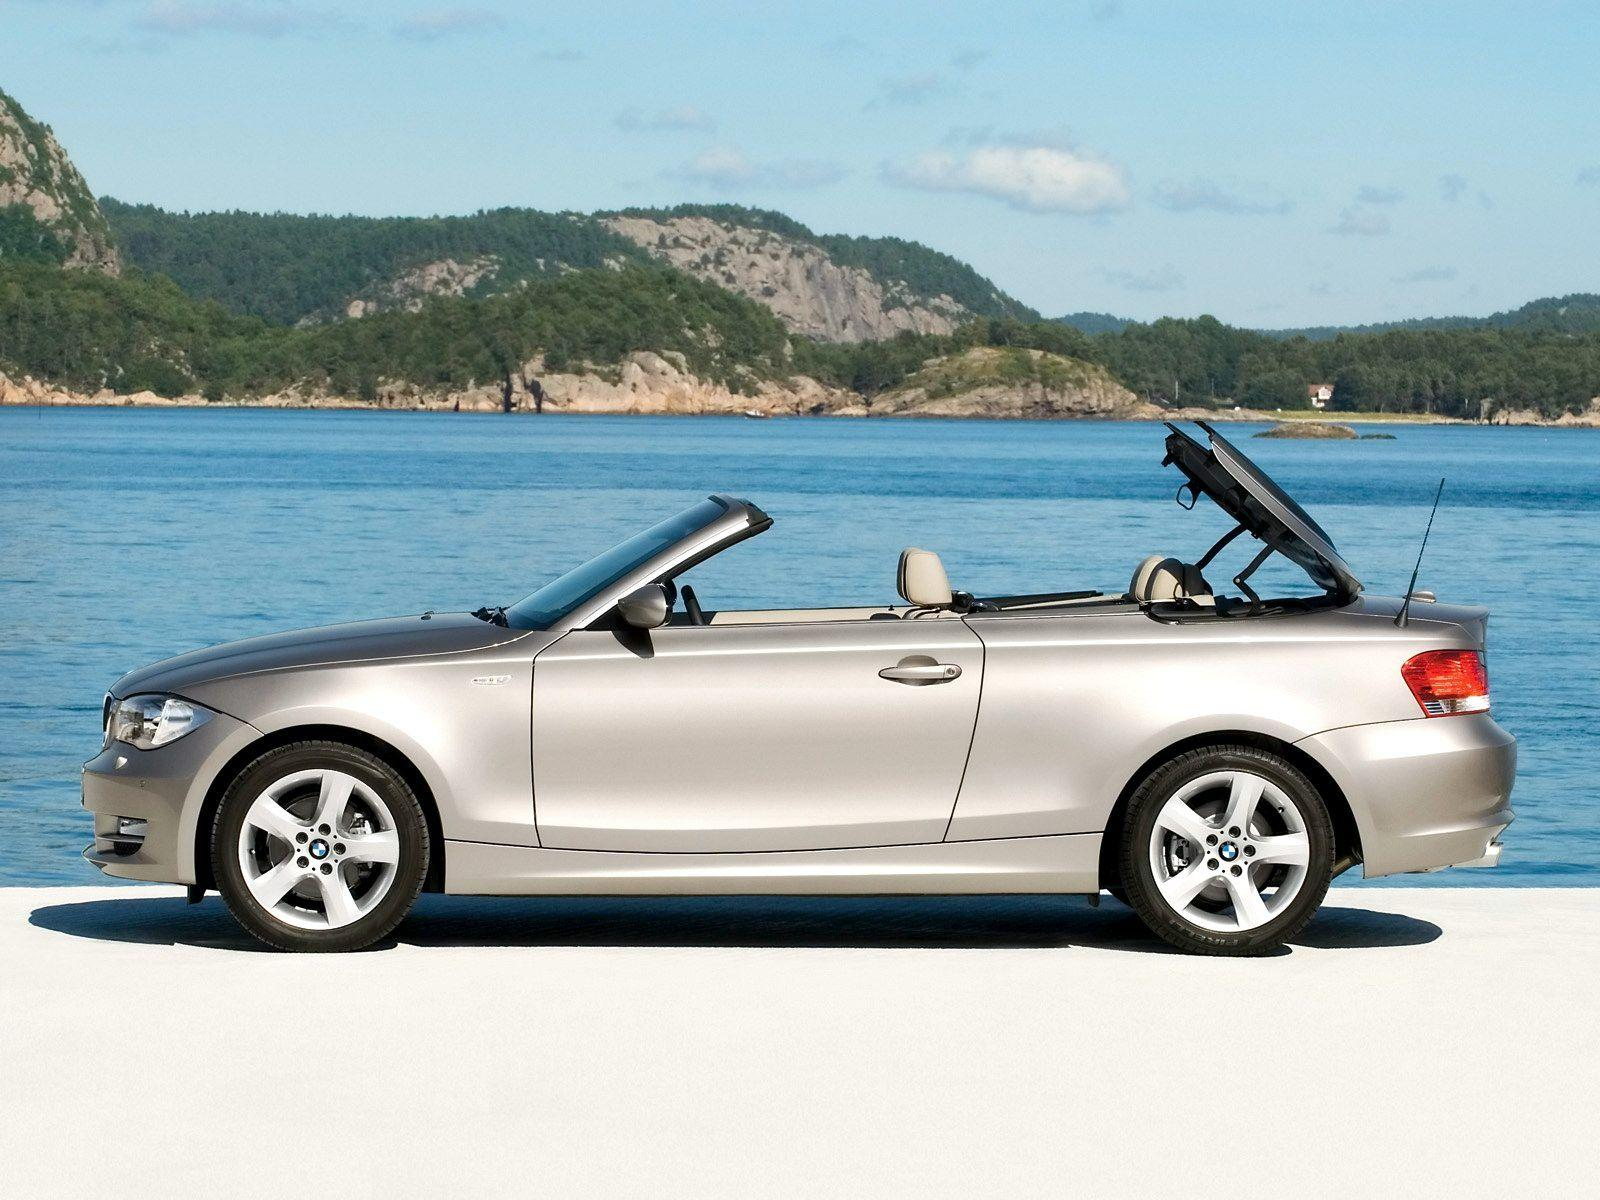 2008 BMW 1 Series Convertible Wallpaper 17 - 1600x1200